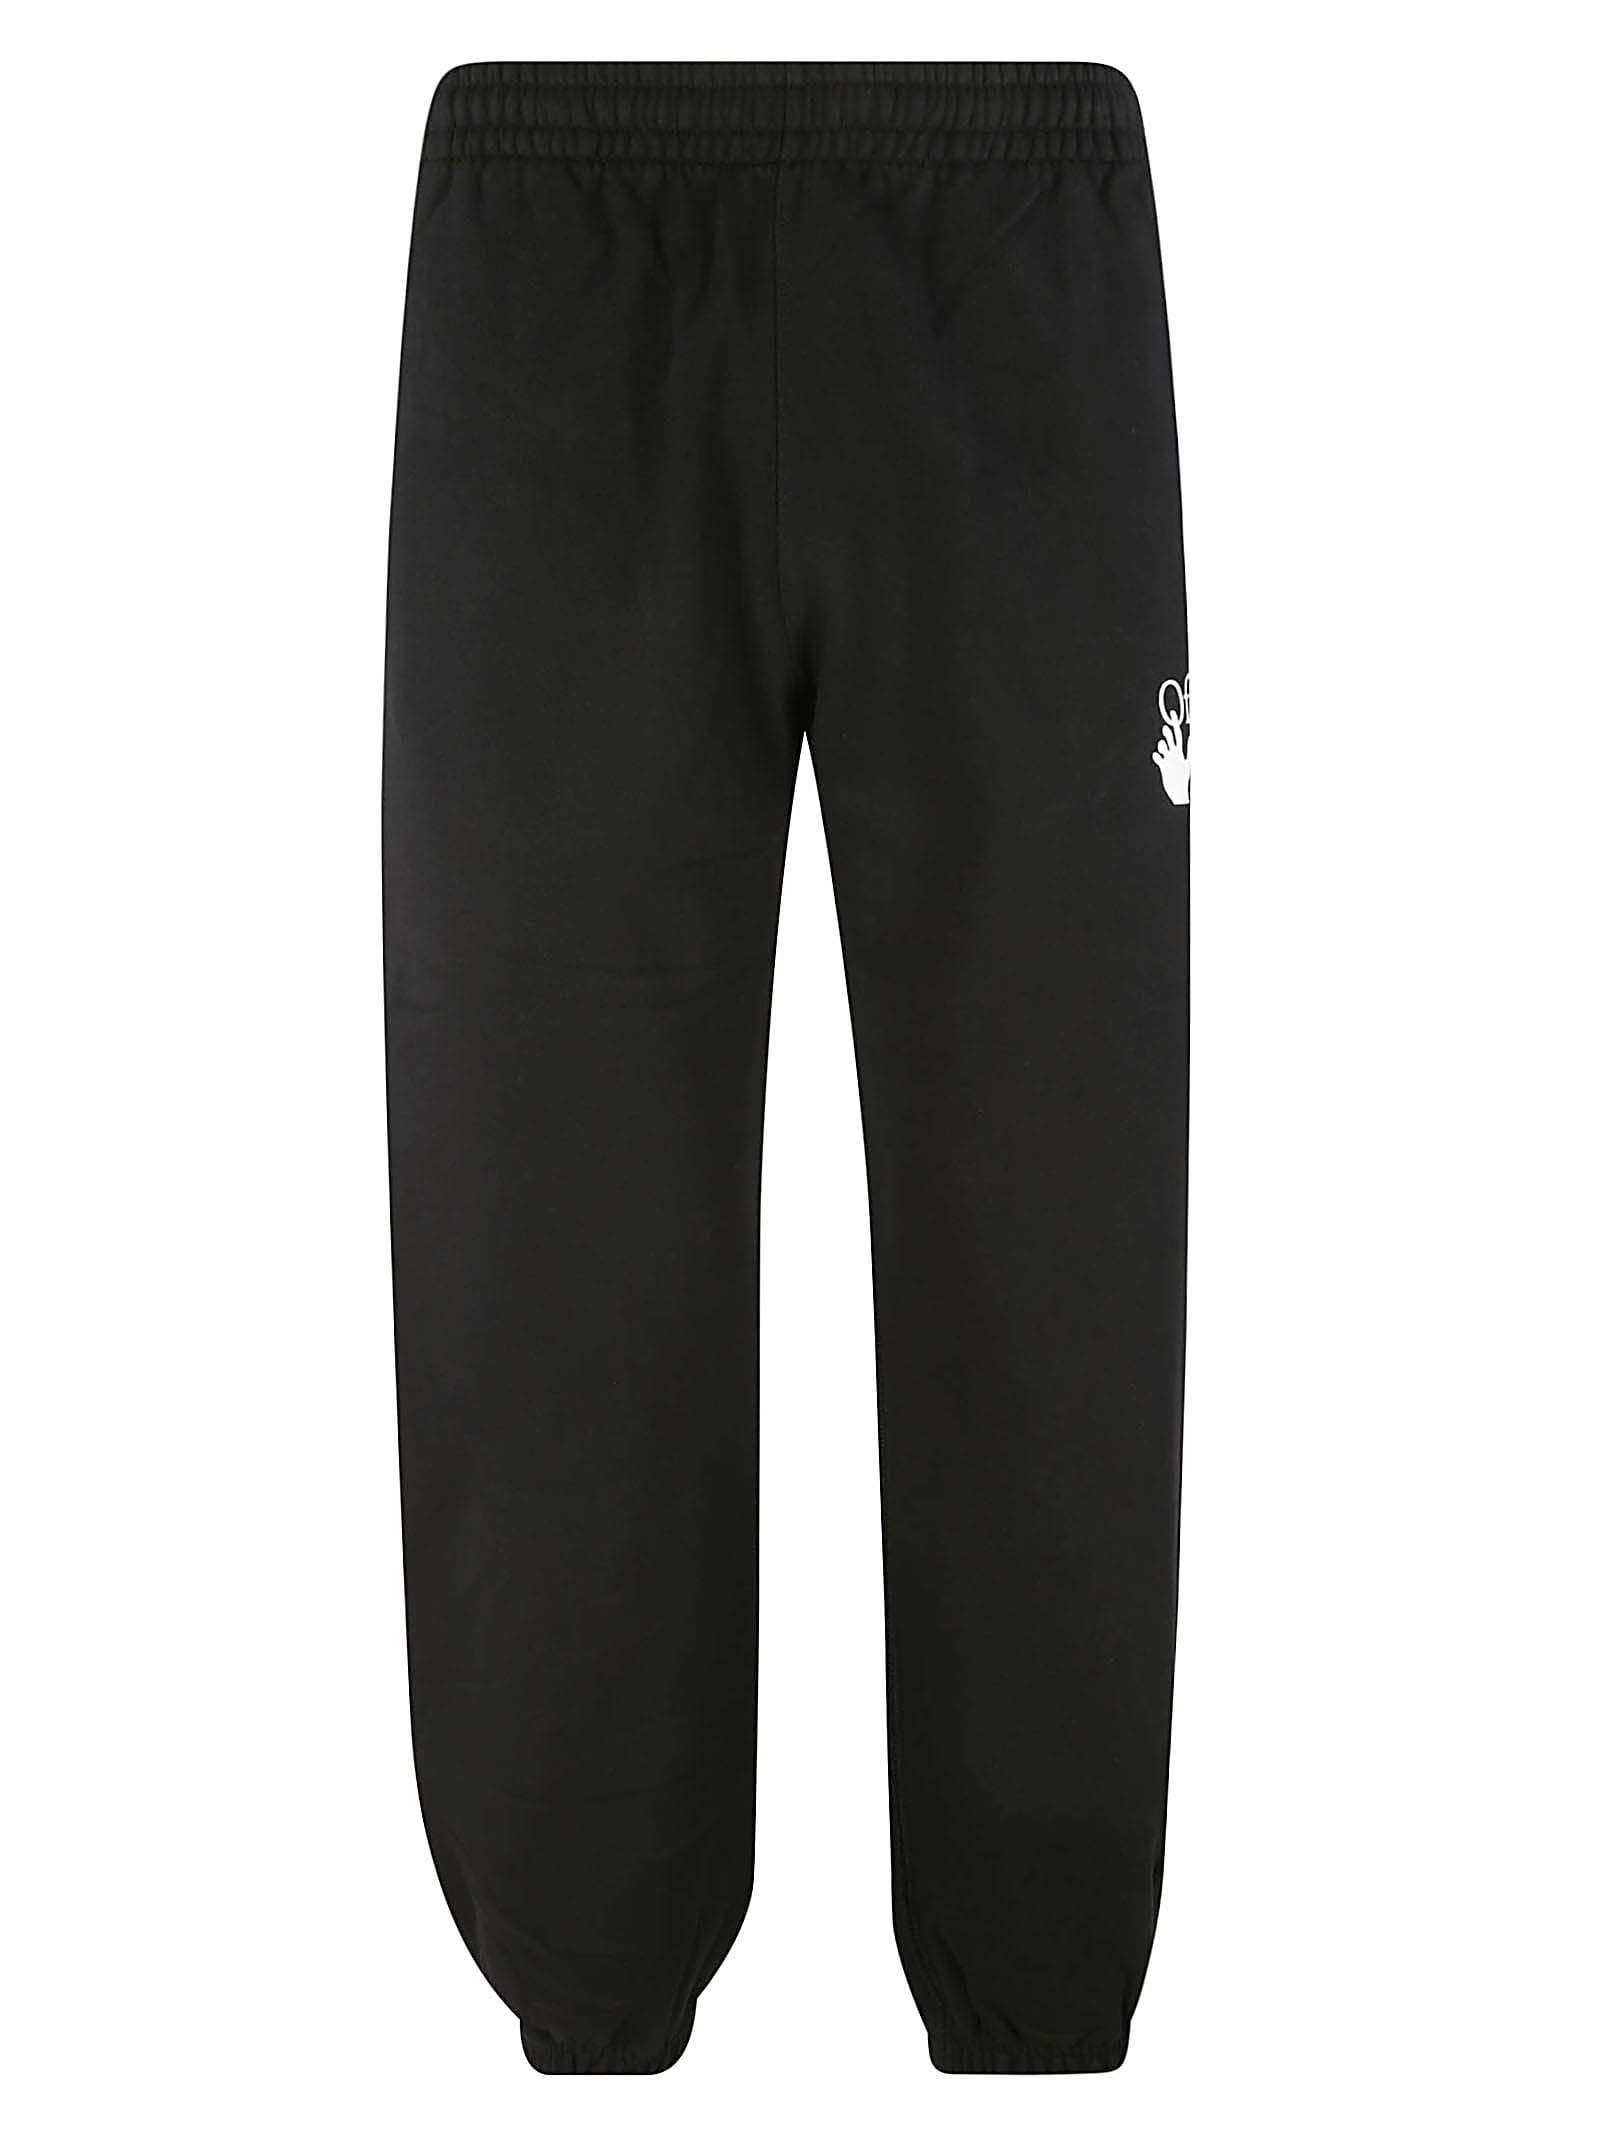 Off-White MARKER SHORTEN SWEATPANTS